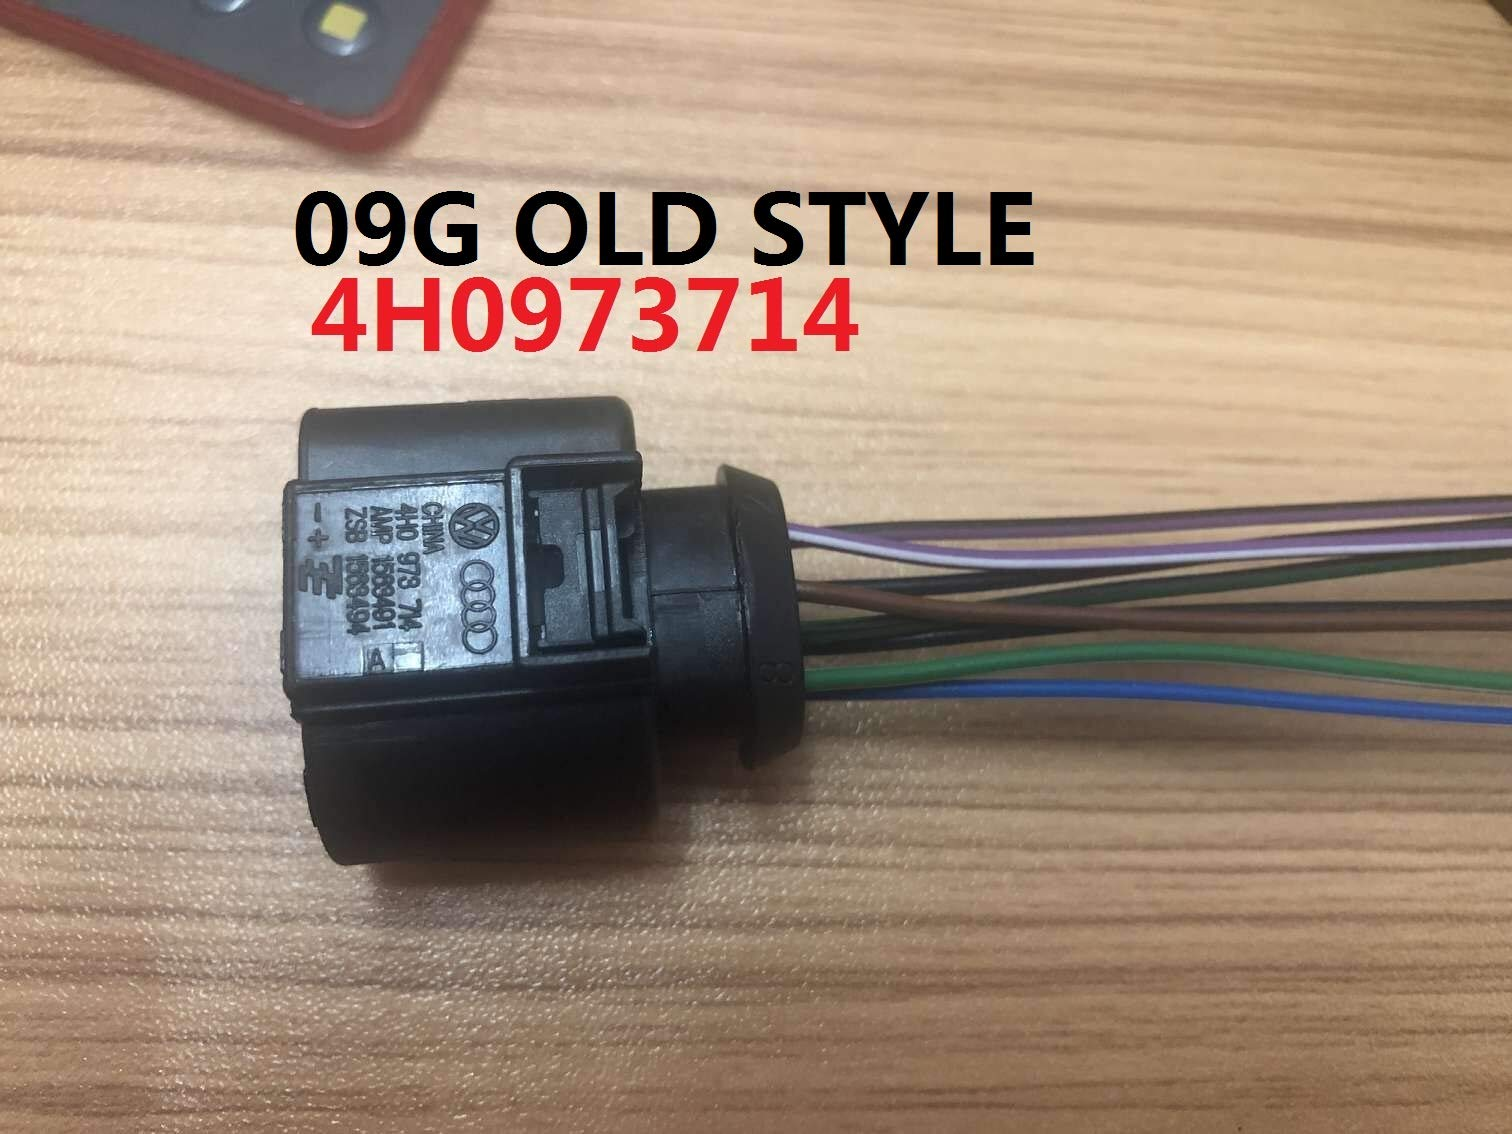 transmission NEW style 09GValve body VB Connector with wires mechatronics wire harness part 4H0973714